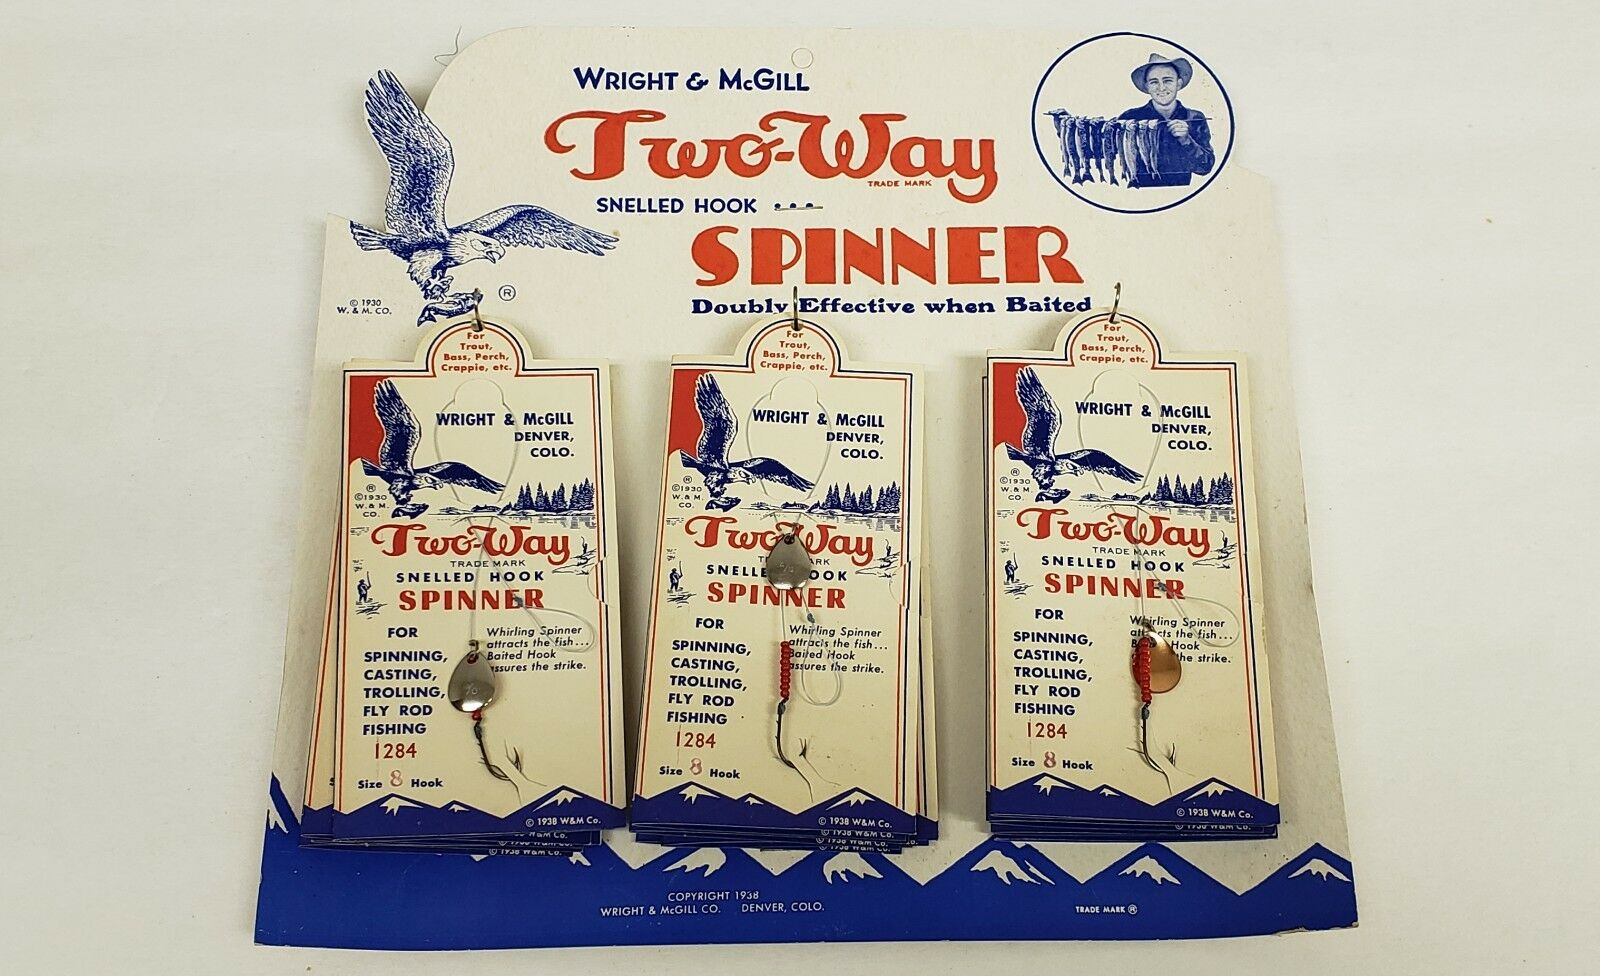 Vintage Wright & McGill Two Way Spinners Dealer Display  C1950  free shipping